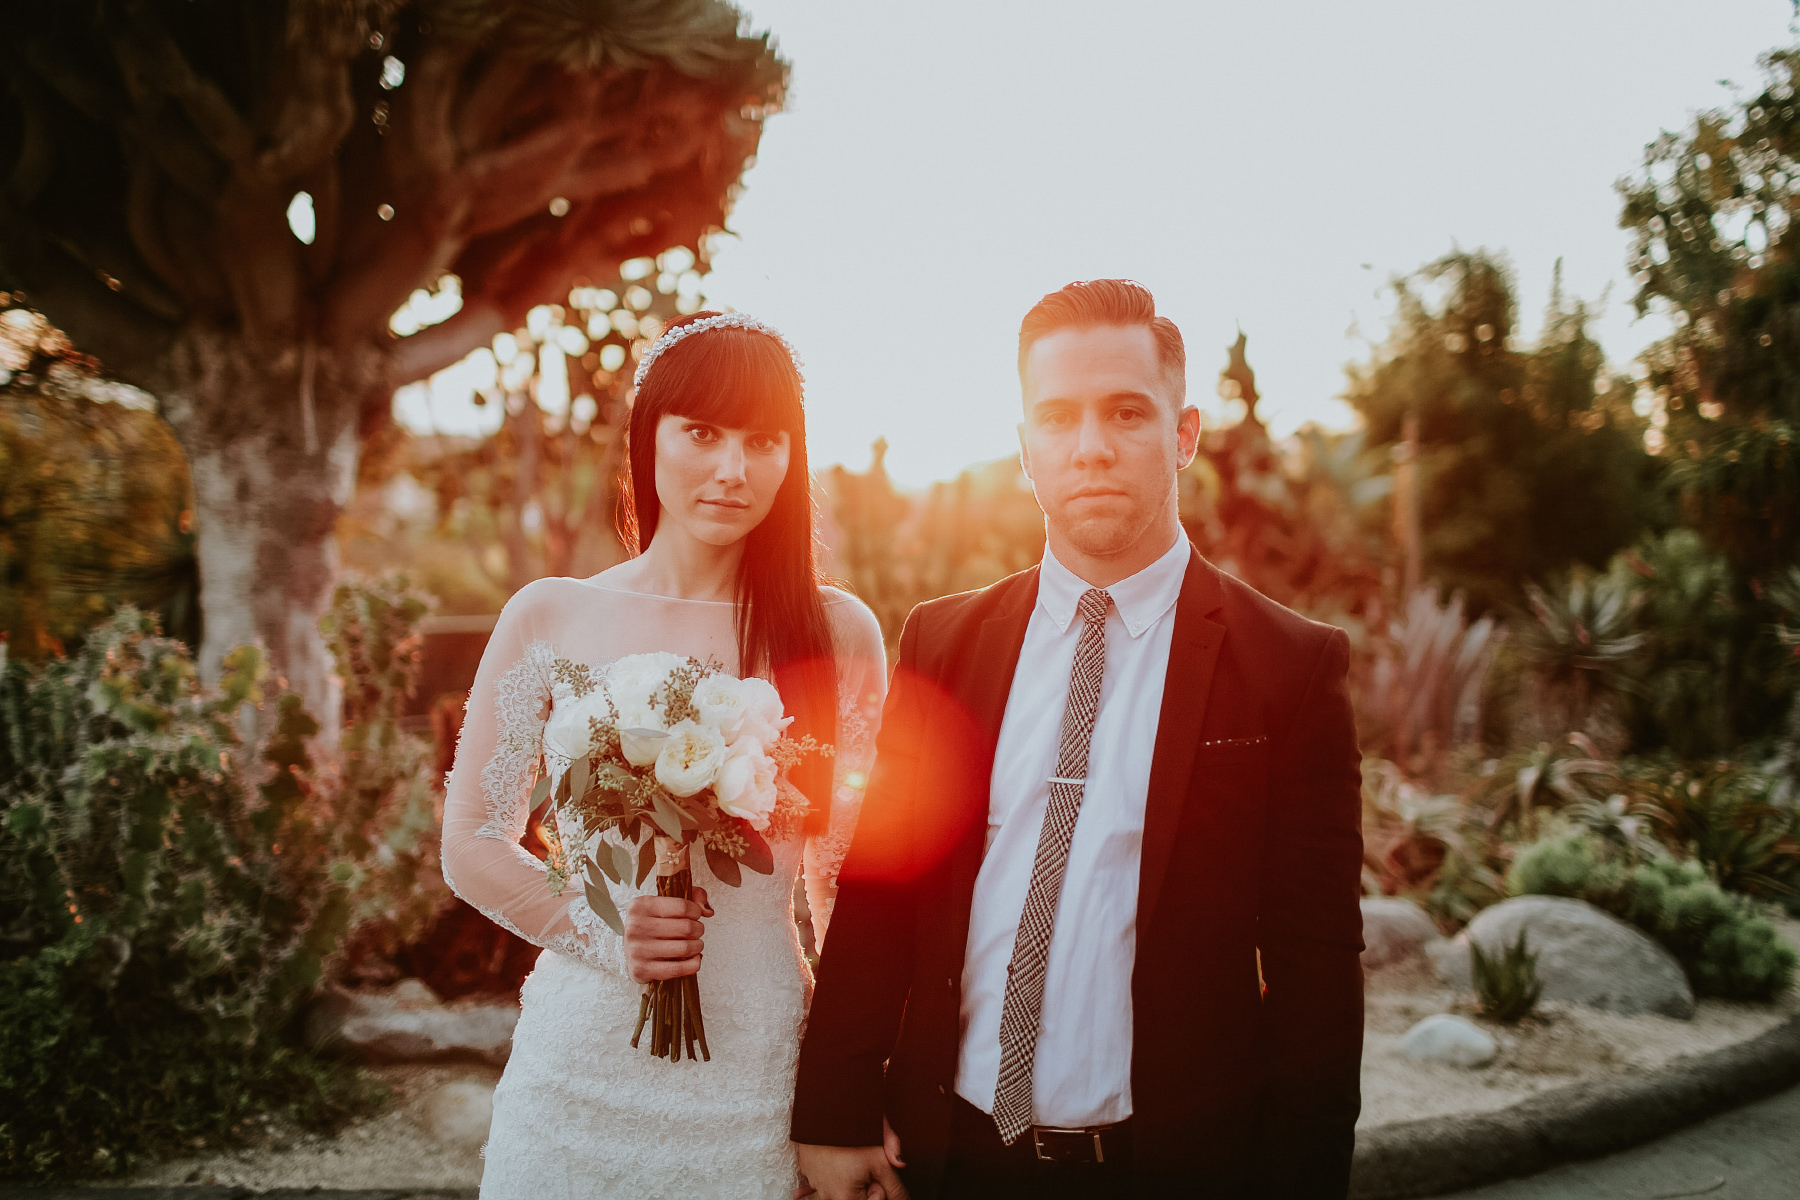 Bride and groom at golden hour at San Diego Botanic Garden